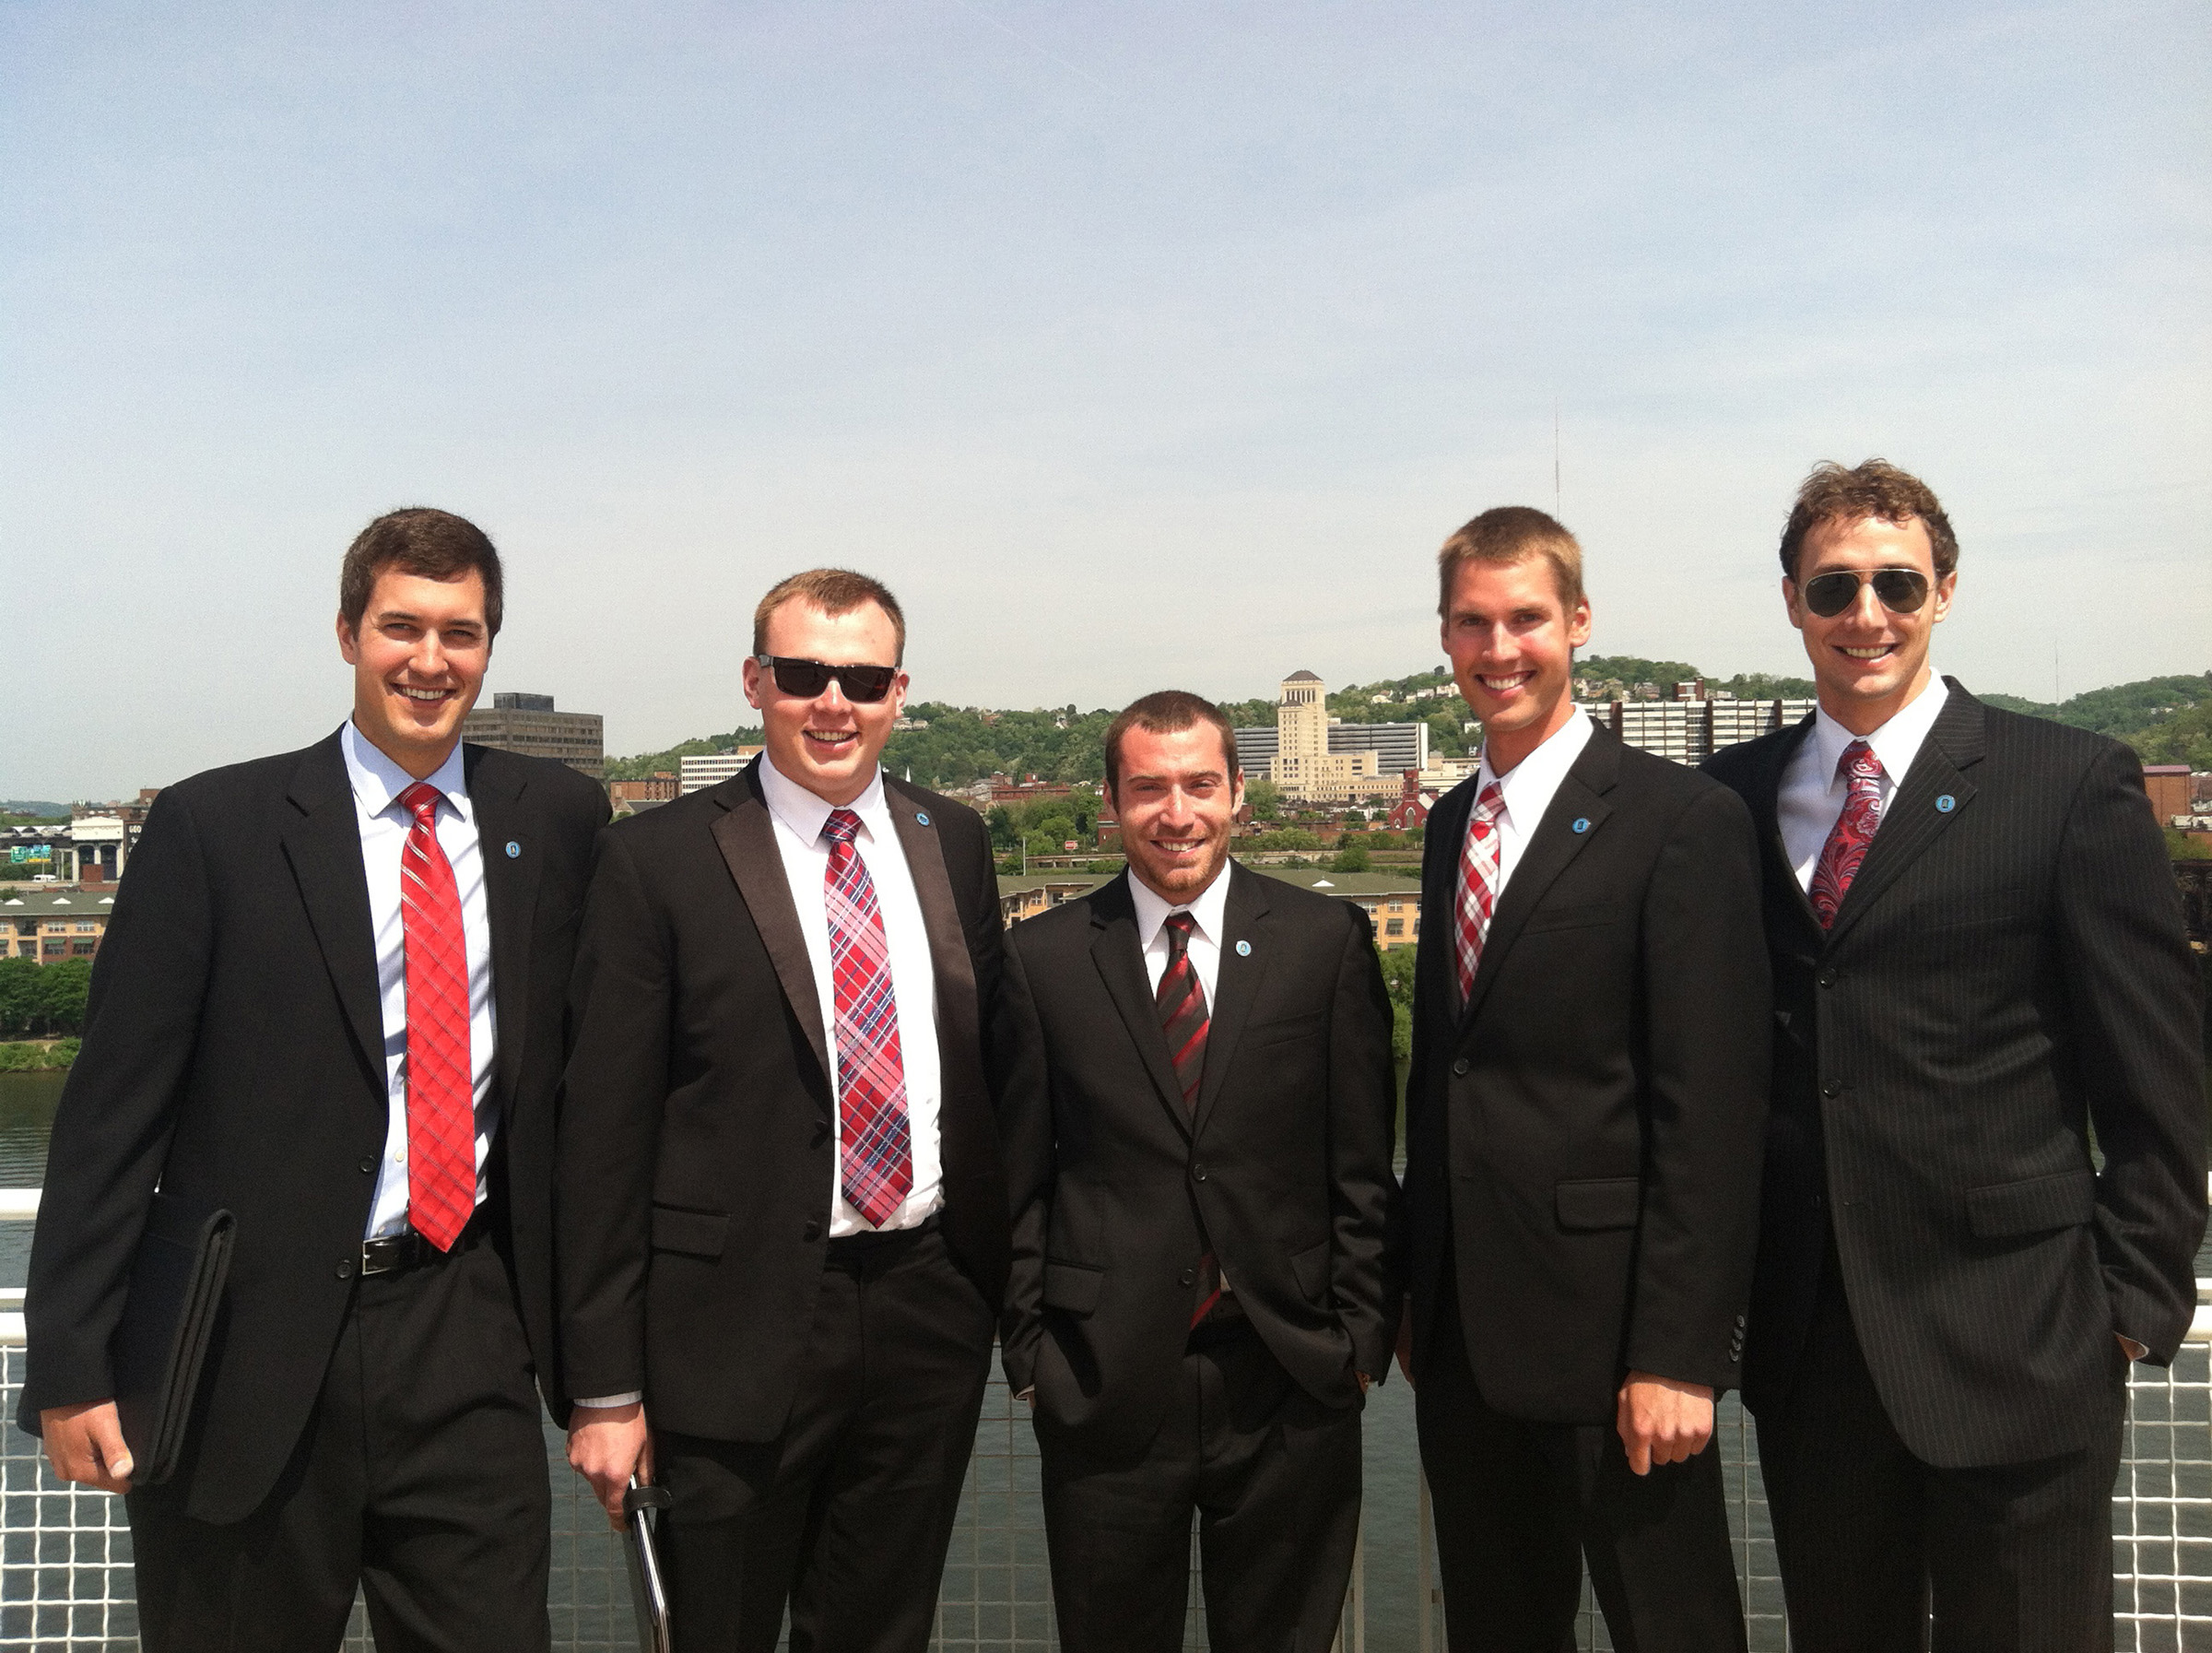 Members of the University of Utah geology and geophysics team won the $20,000 Imperial Barrel Award on May 19 in Pittsburgh during the annual convention of the American Association of Petroleum Geologists. From left to right, team members are graduate students Alexandre Turner, Marko Gorenc, Morgan Rosenberg, Tyler Szwarc and Mason Edwards.